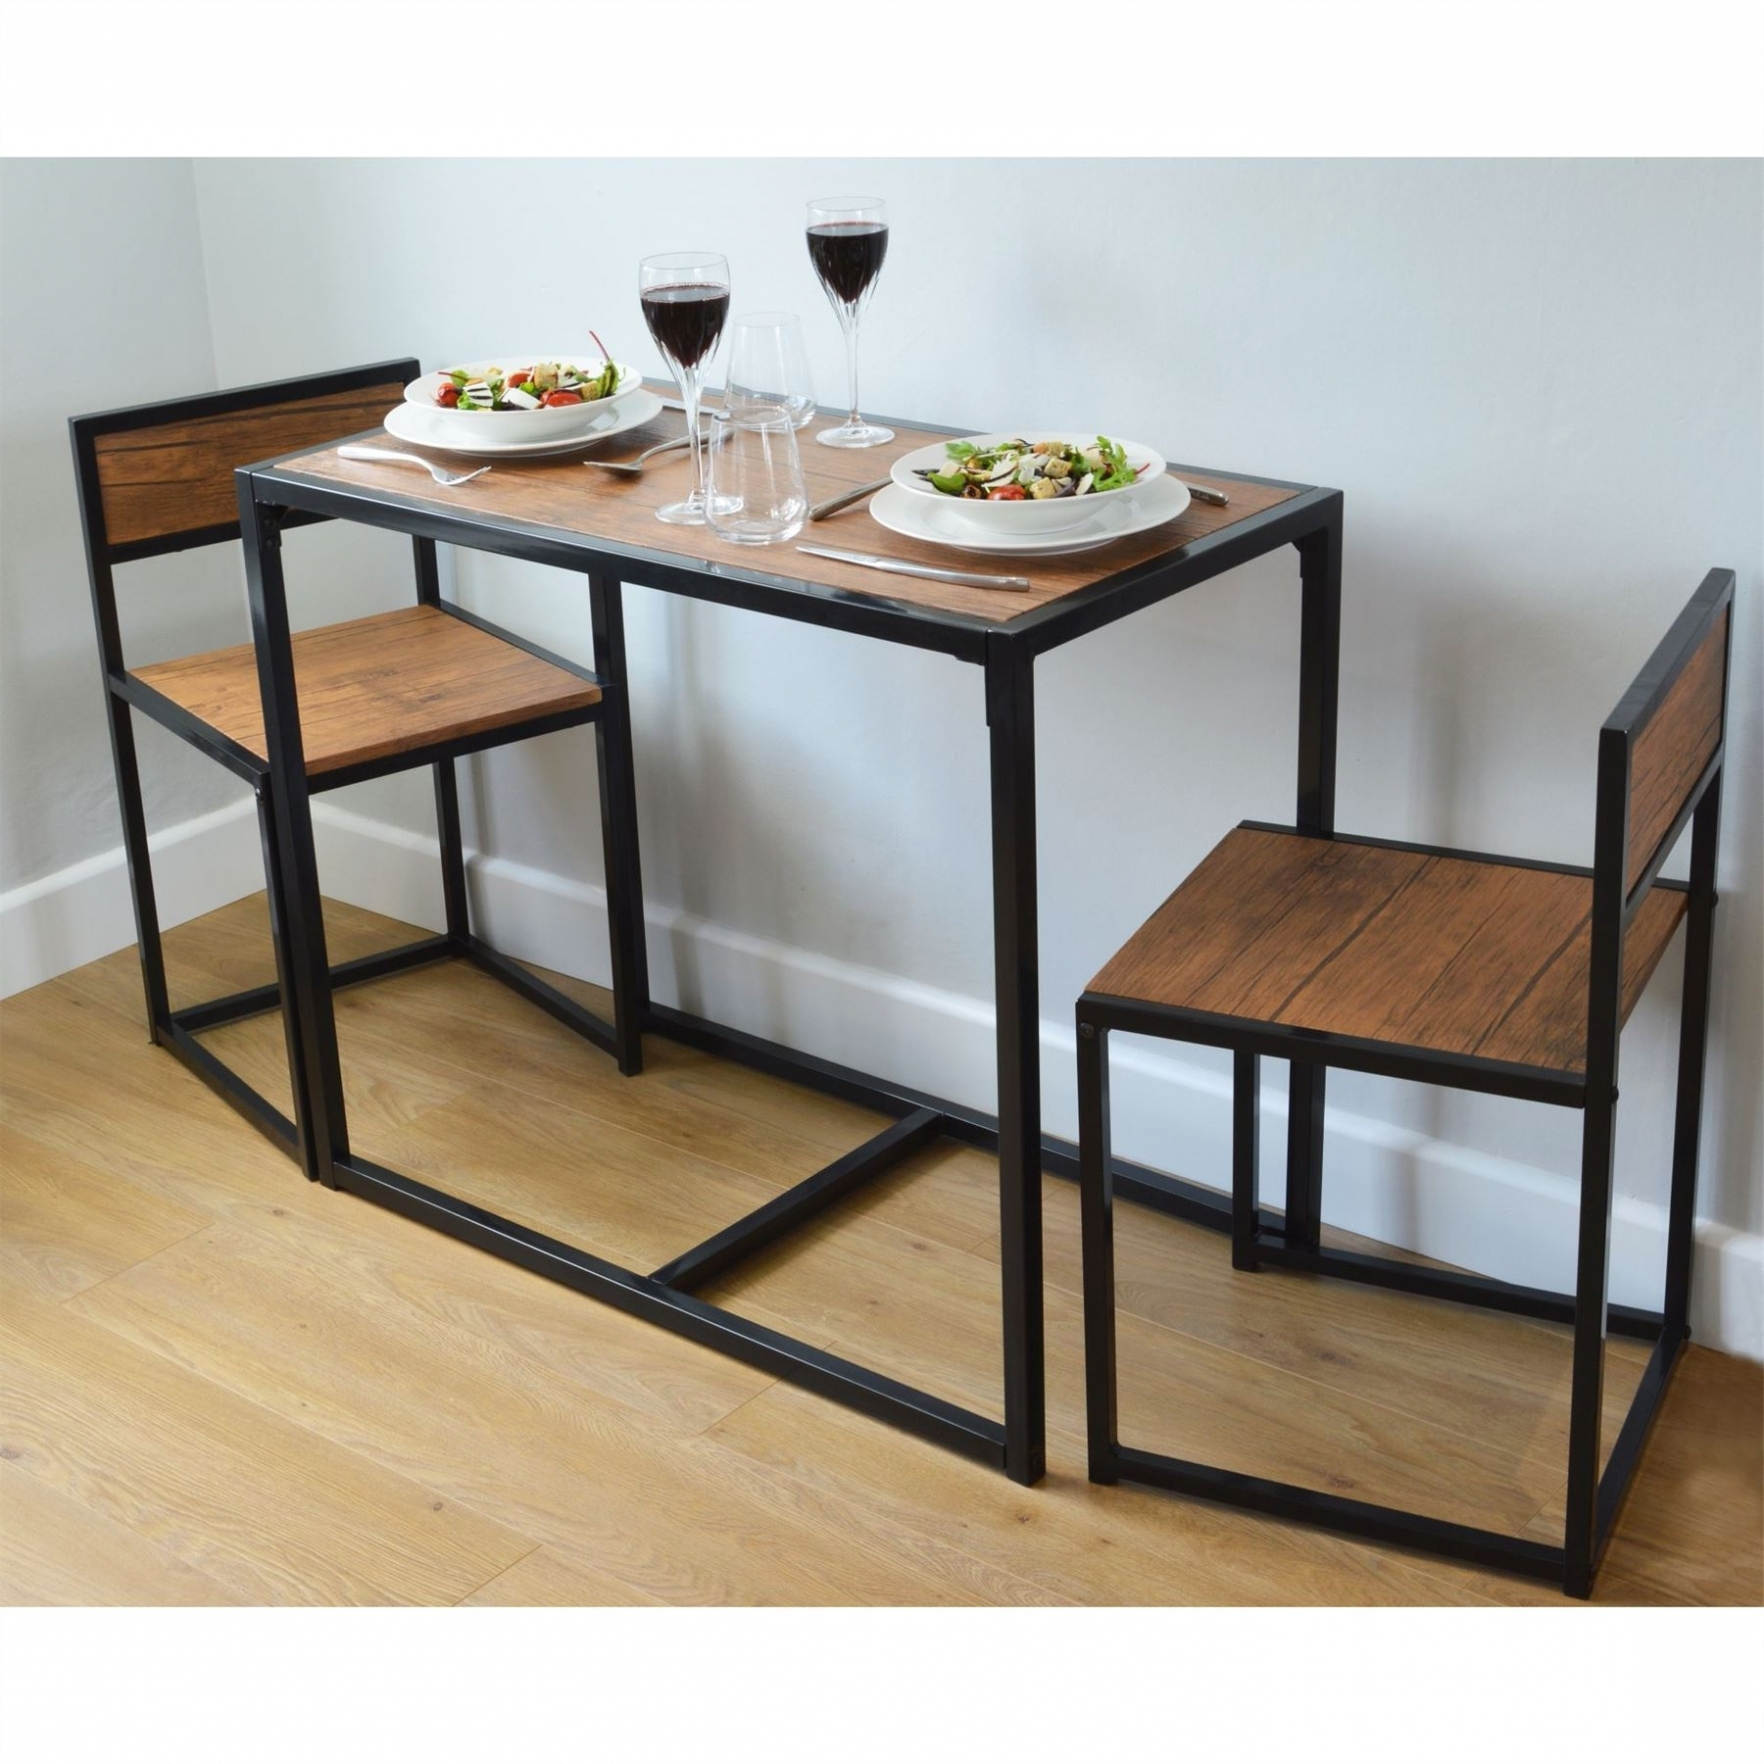 Most Popular Two Person Dining Table Sets With Regard To Dining: 2 Person Space Saving, Compact, Kitchen Dining Table (View 16 of 25)